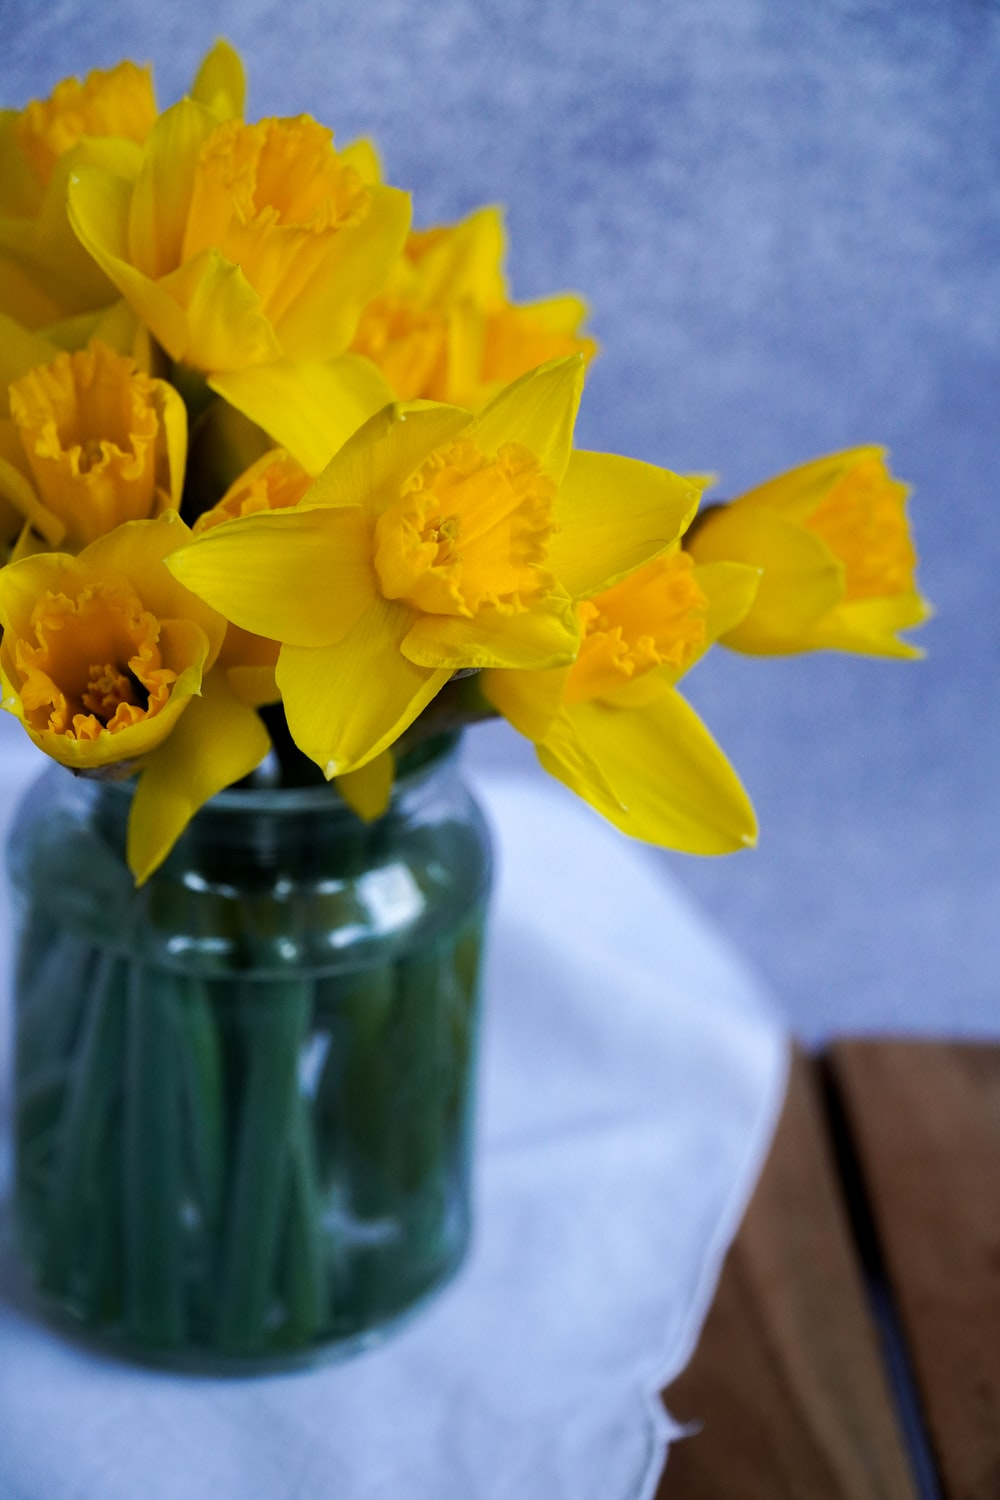 yellow flowers in green glass vase